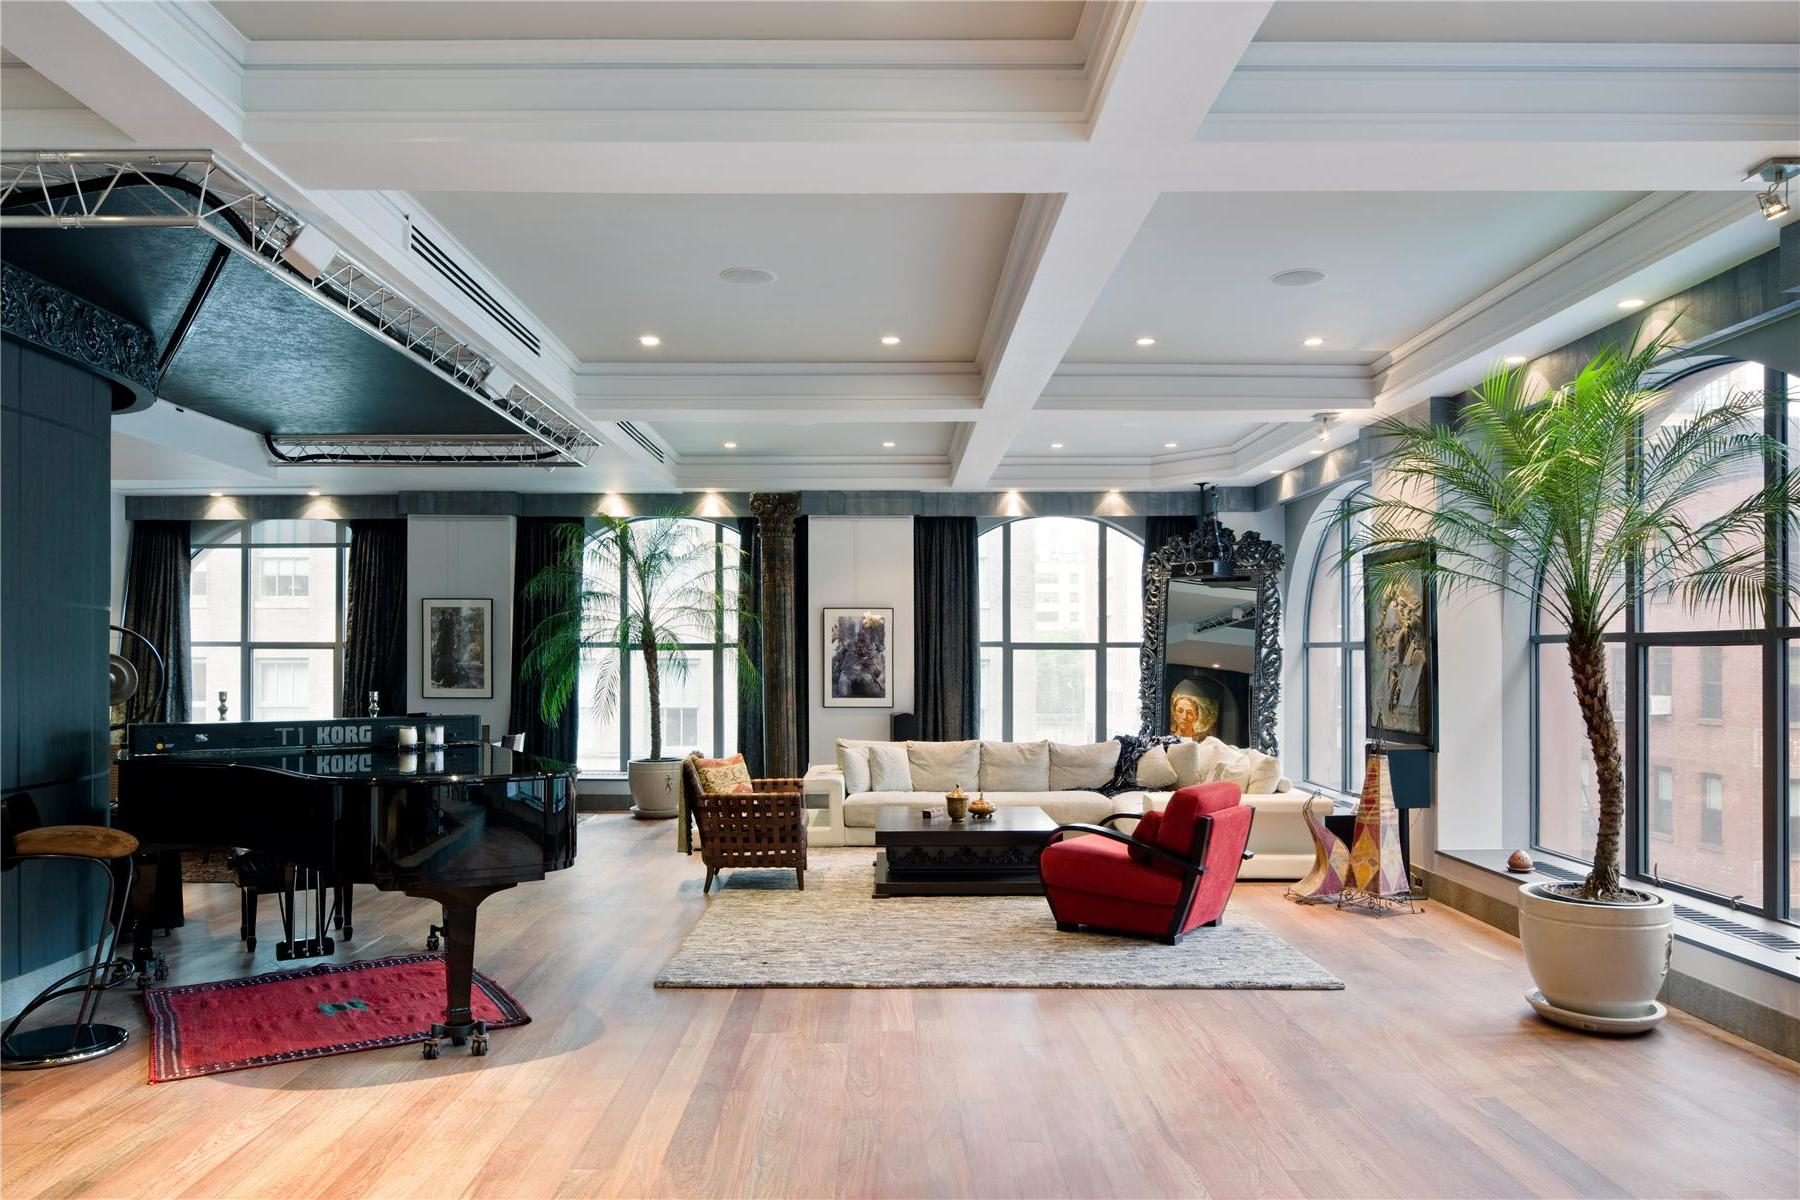 sofa cleaning nyc cost fabric recliner sets uk contemporary 408 greenwich street loft in new york